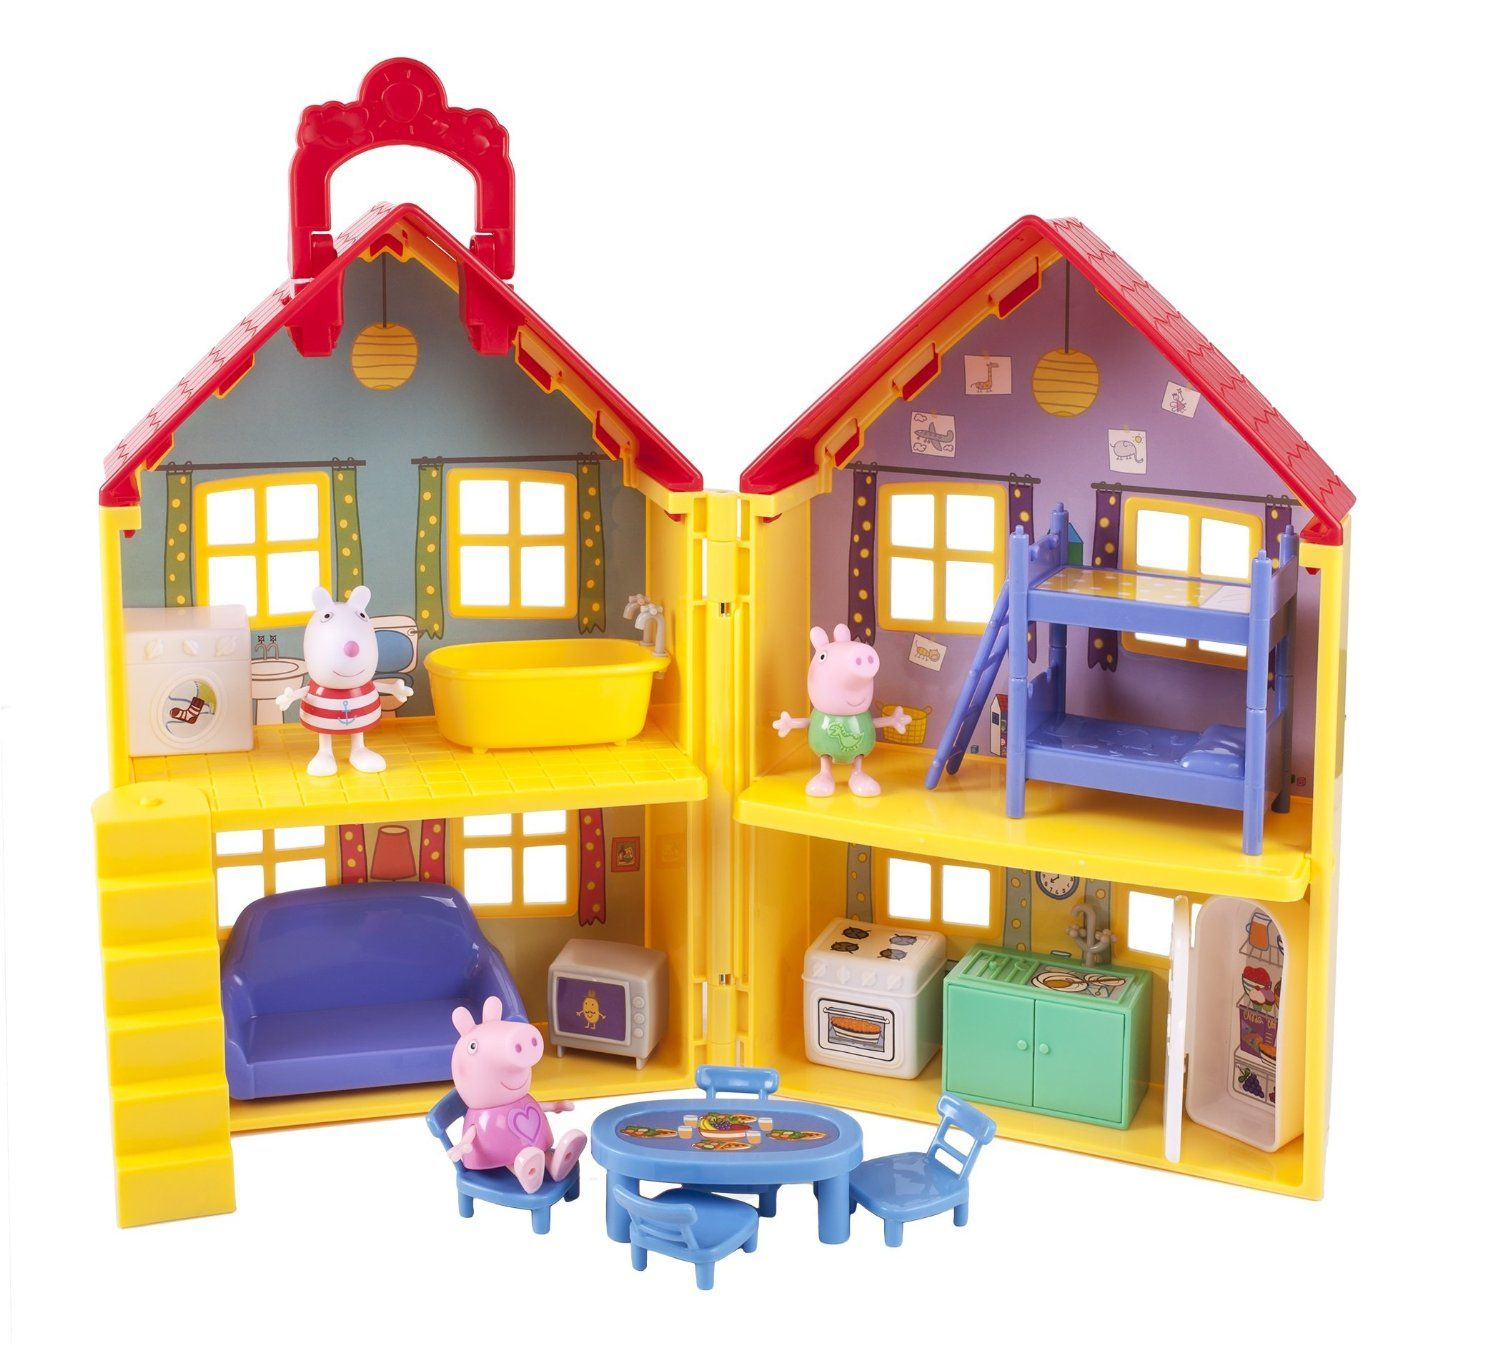 Peppa Pig 039 S Deluxe House Peppa Suzy George Playhouse